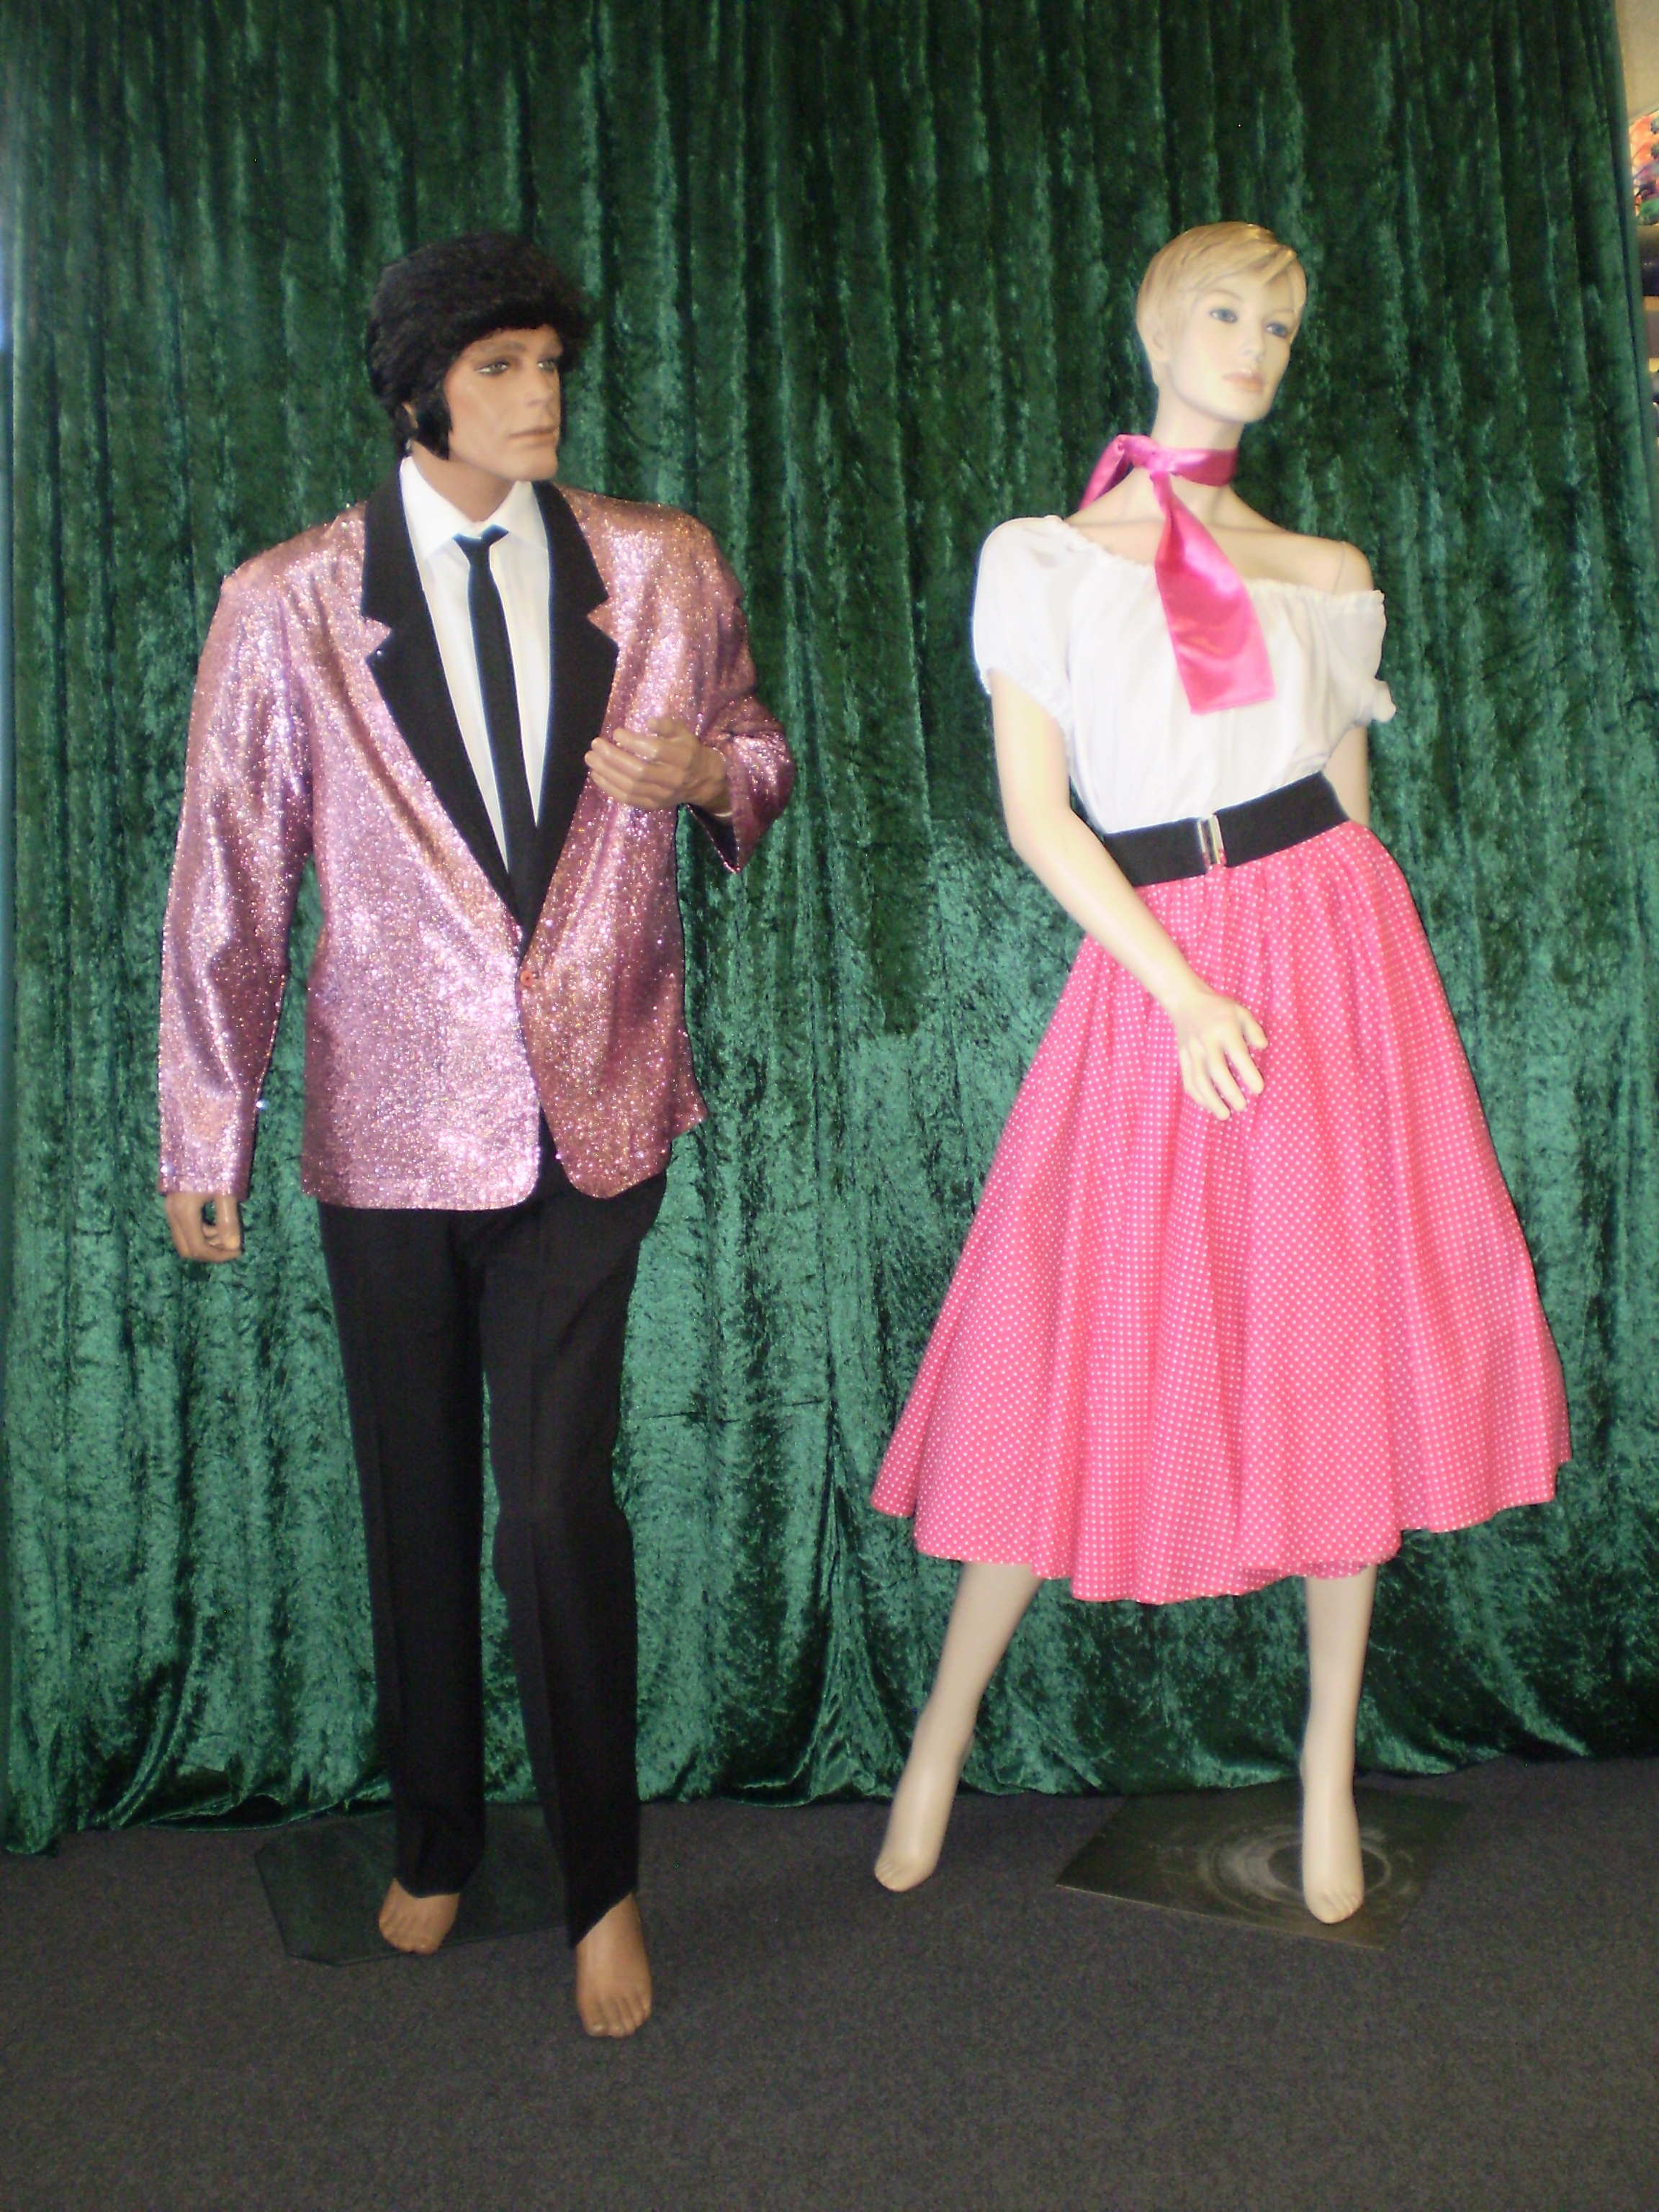 1950s fashion, Rock & Roll or Rockabilly for men and women